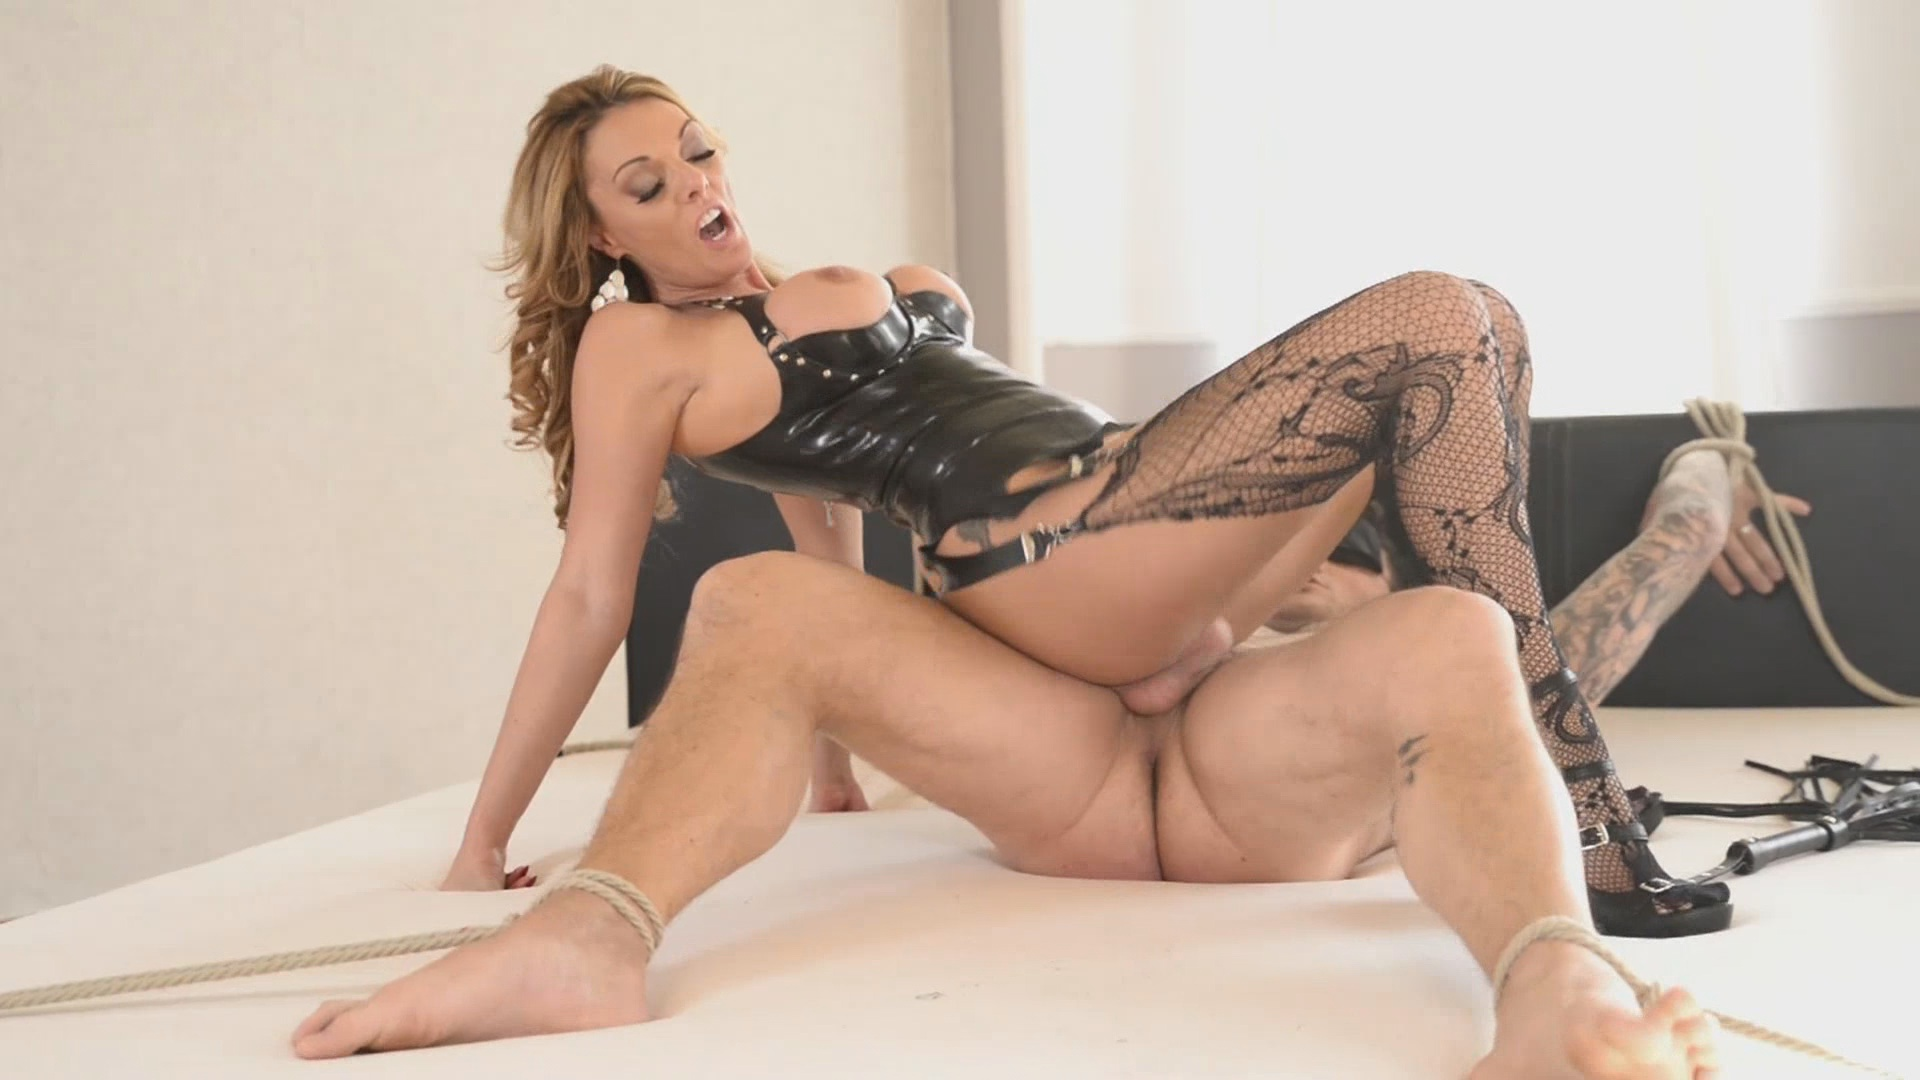 Kinky Games xvideos